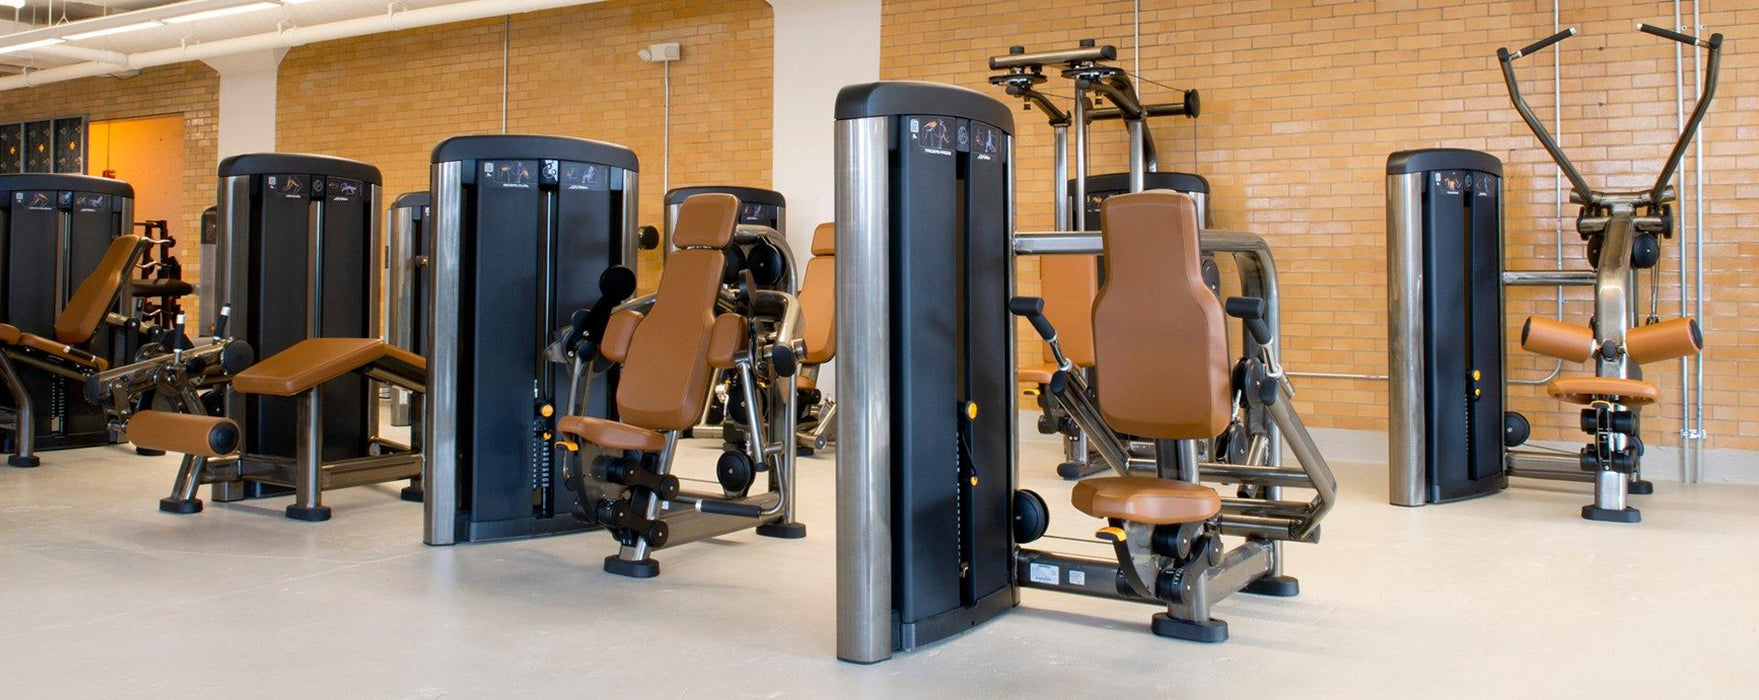 Life Fitness Insignia Series Row Selectorised